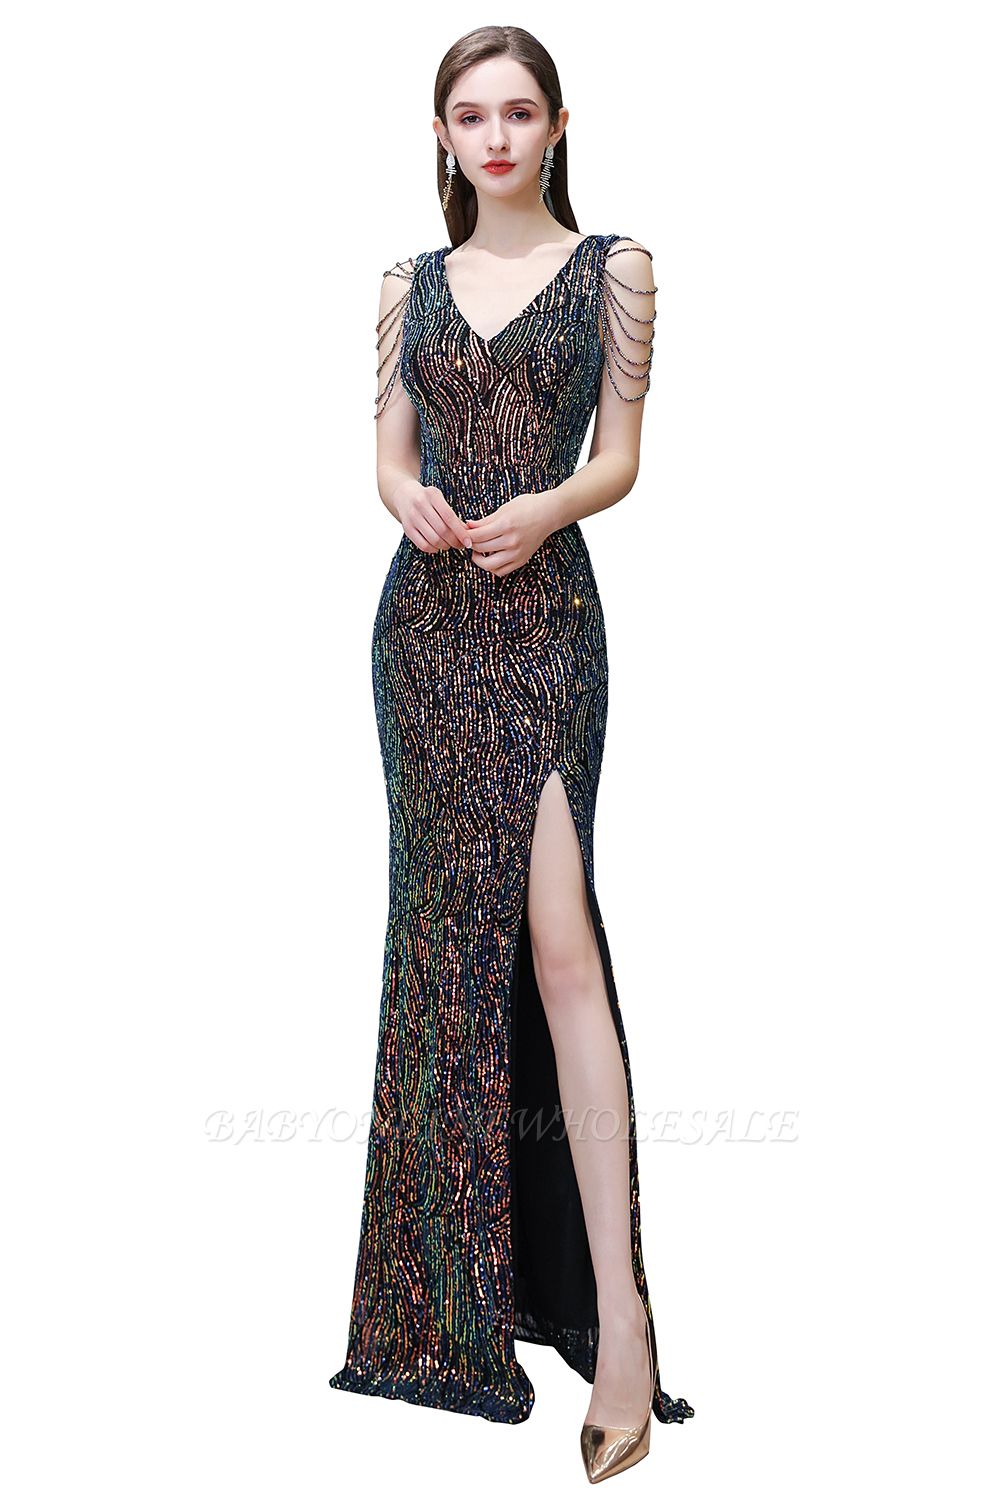 Sparkle V-neck High split Sleeveless Black Evening Dress Online